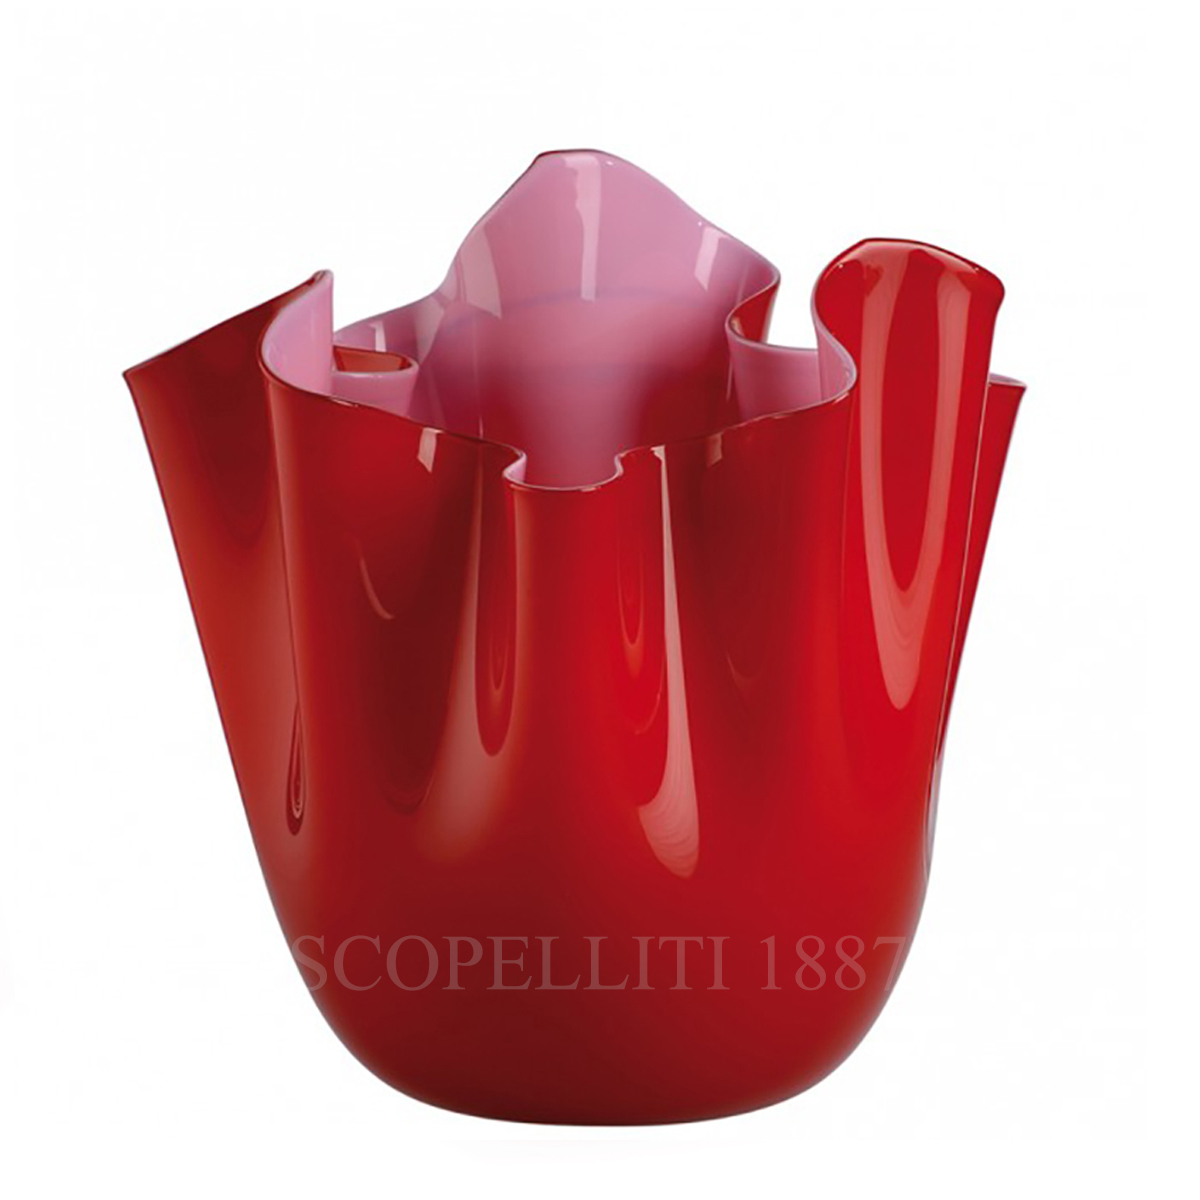 Venini Fazzoletto Vase medium red/opaque-pink 700.02